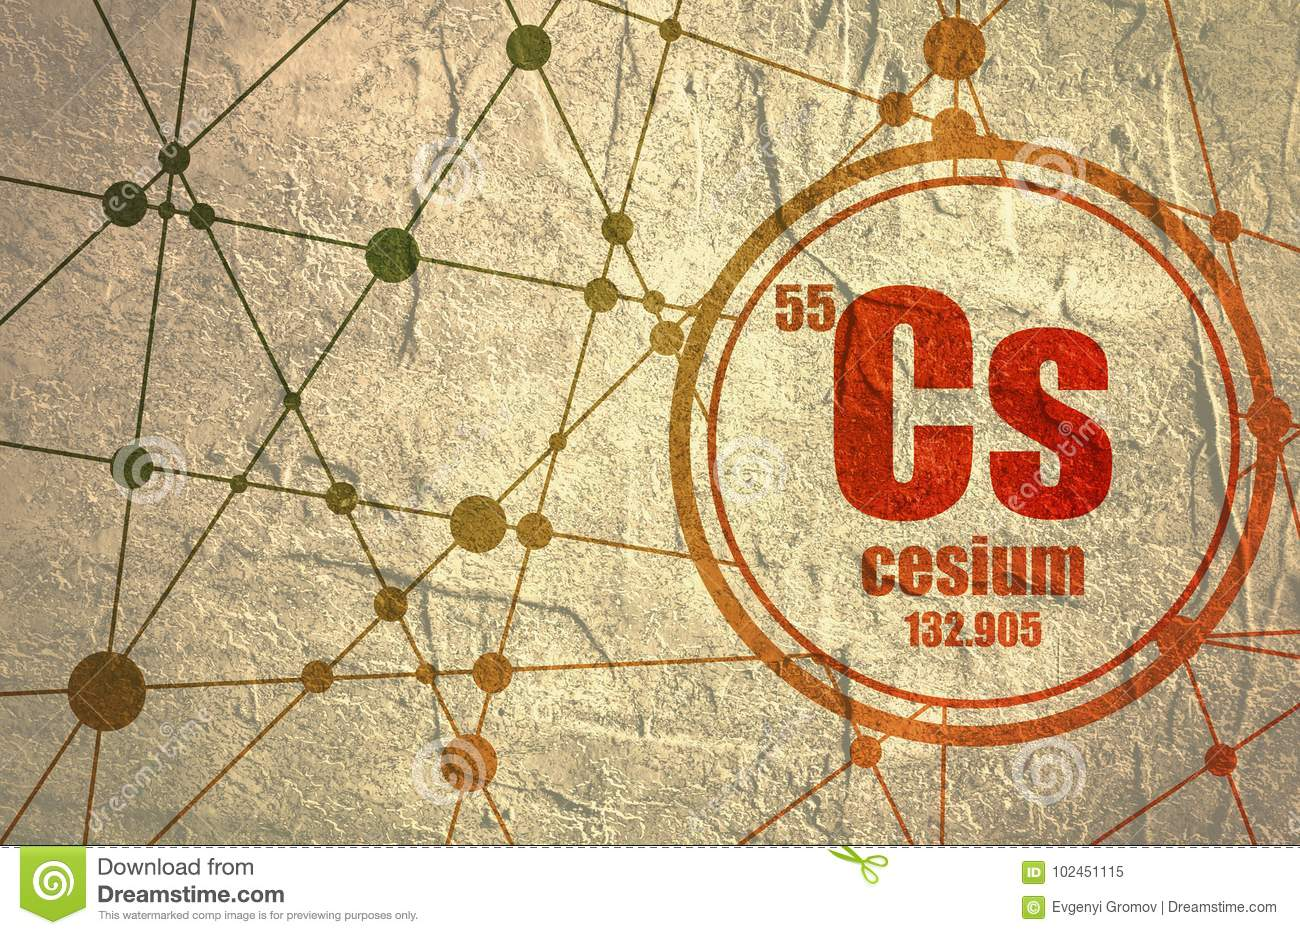 Cesium Chemical Element. Stock Illustration. Illustration